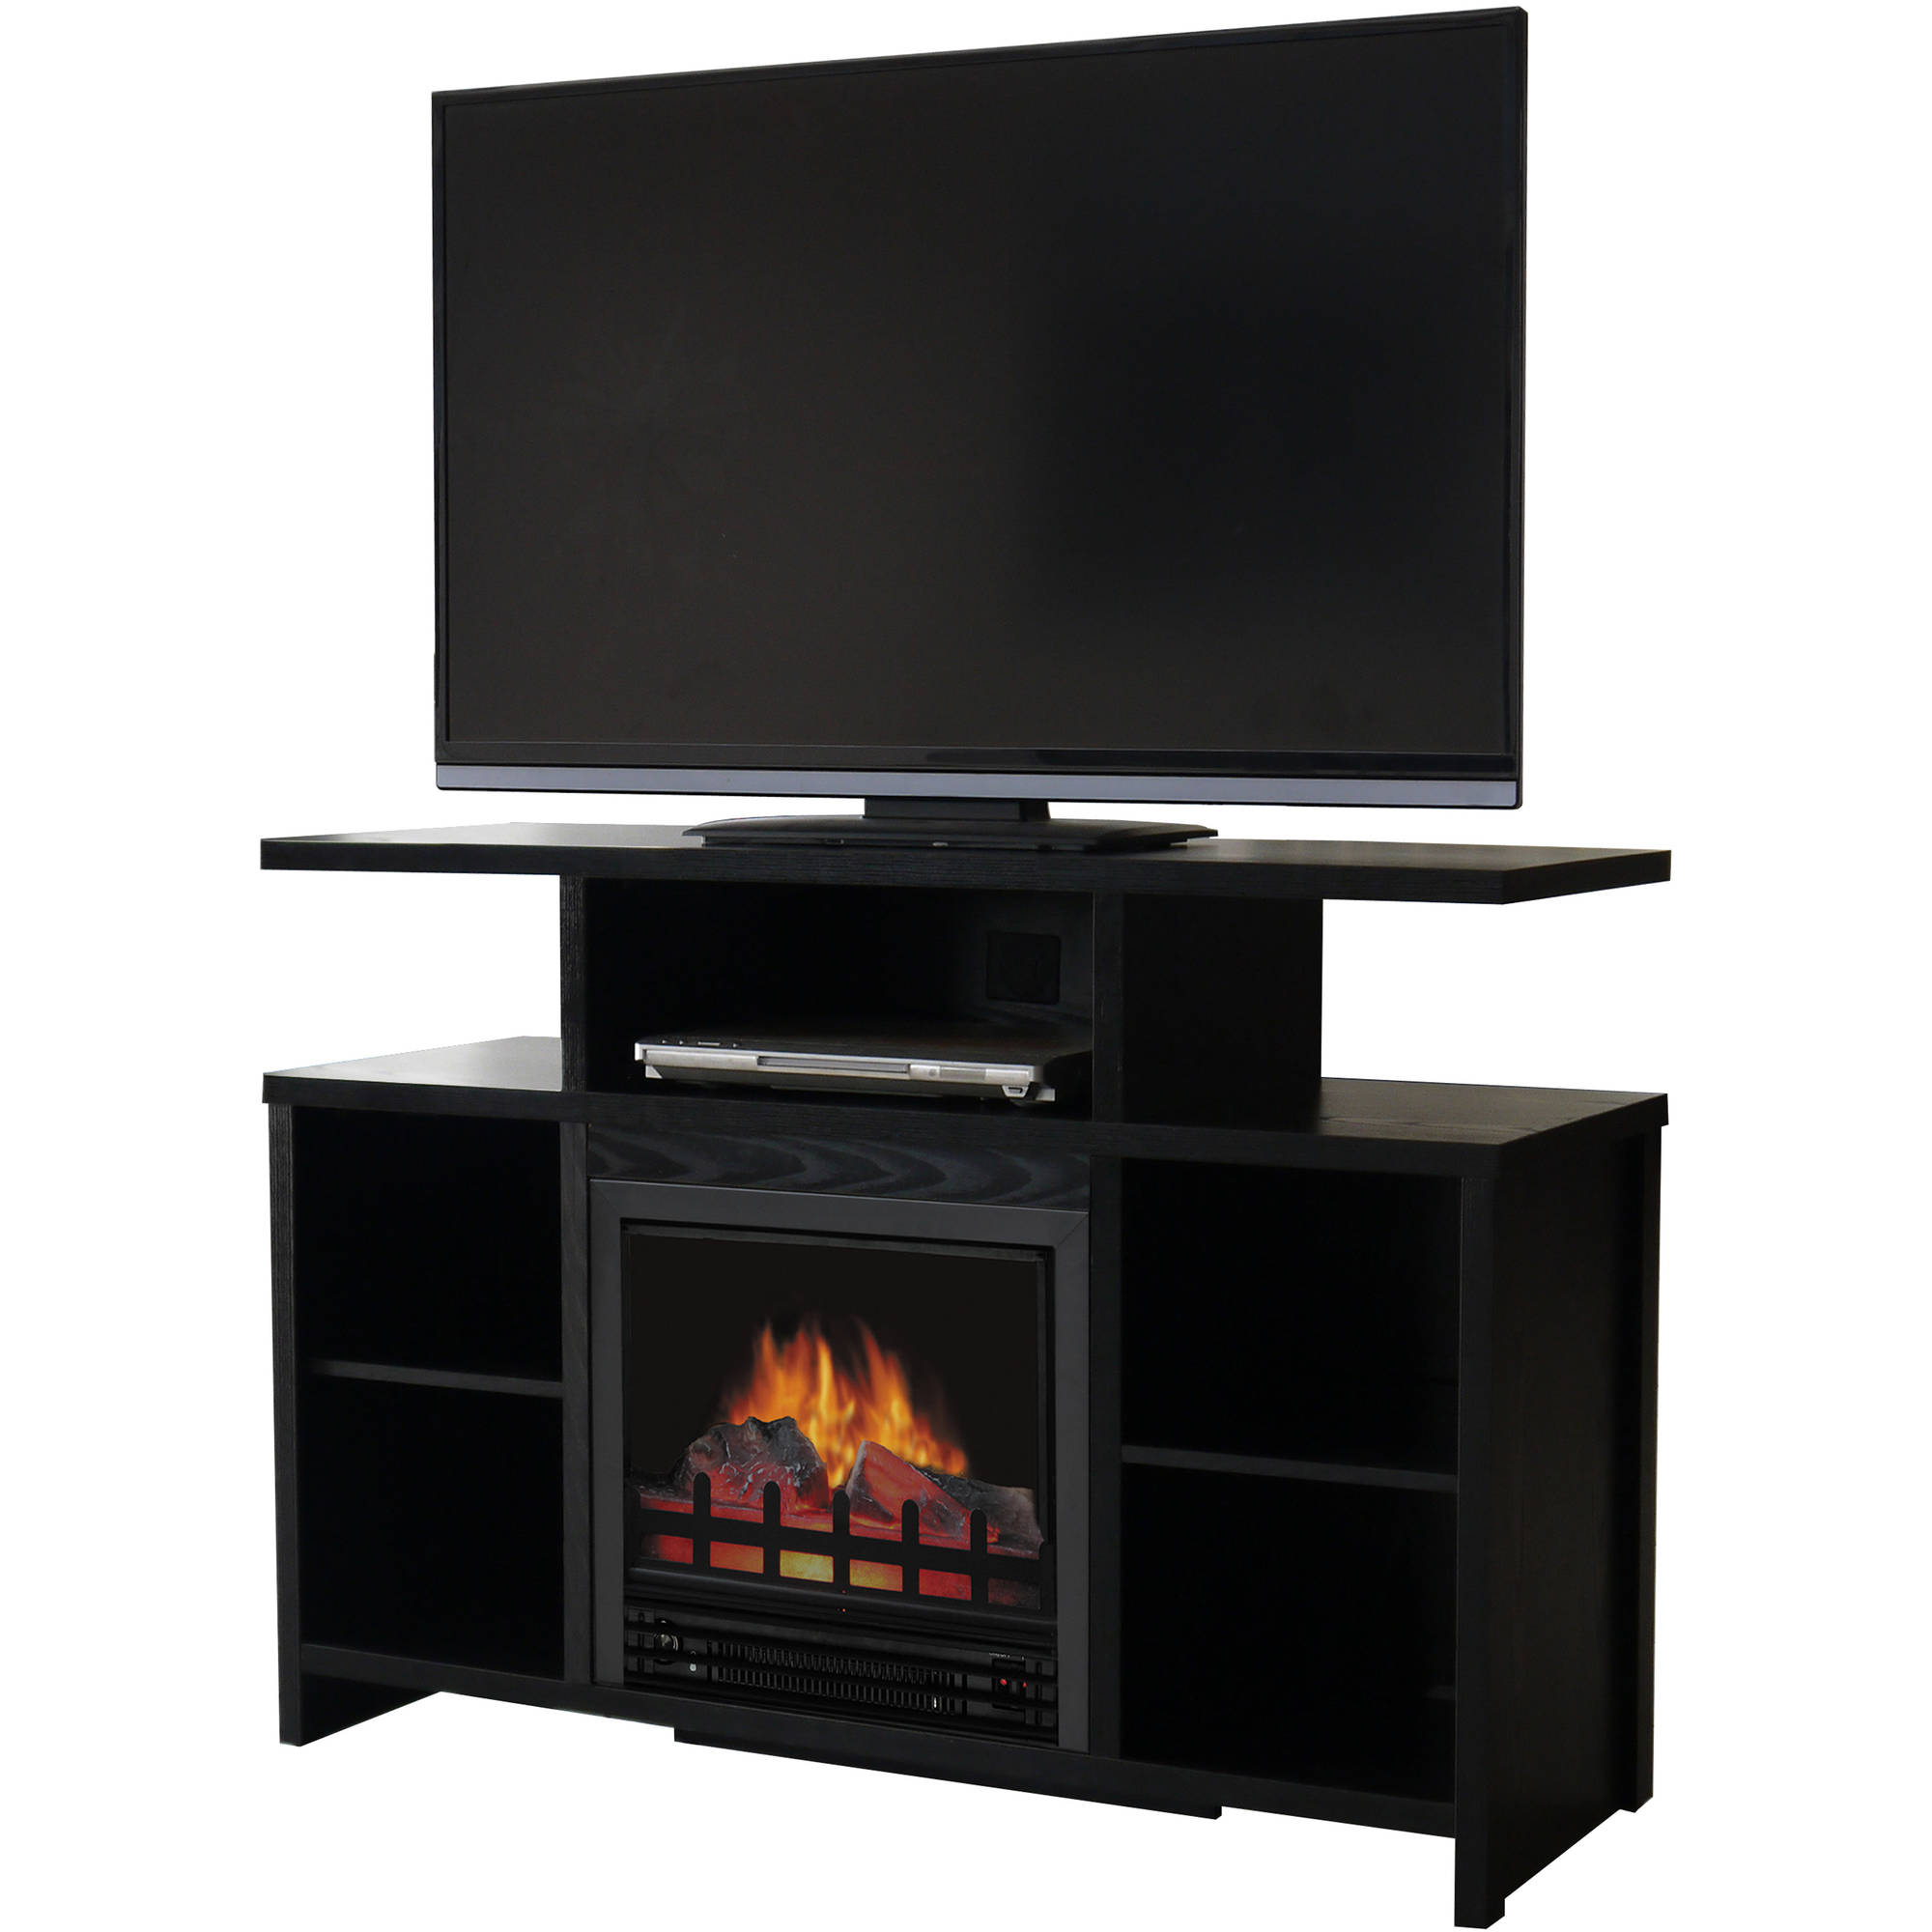 Walmart Black Electric Fireplace Décor Flame Acadia 42